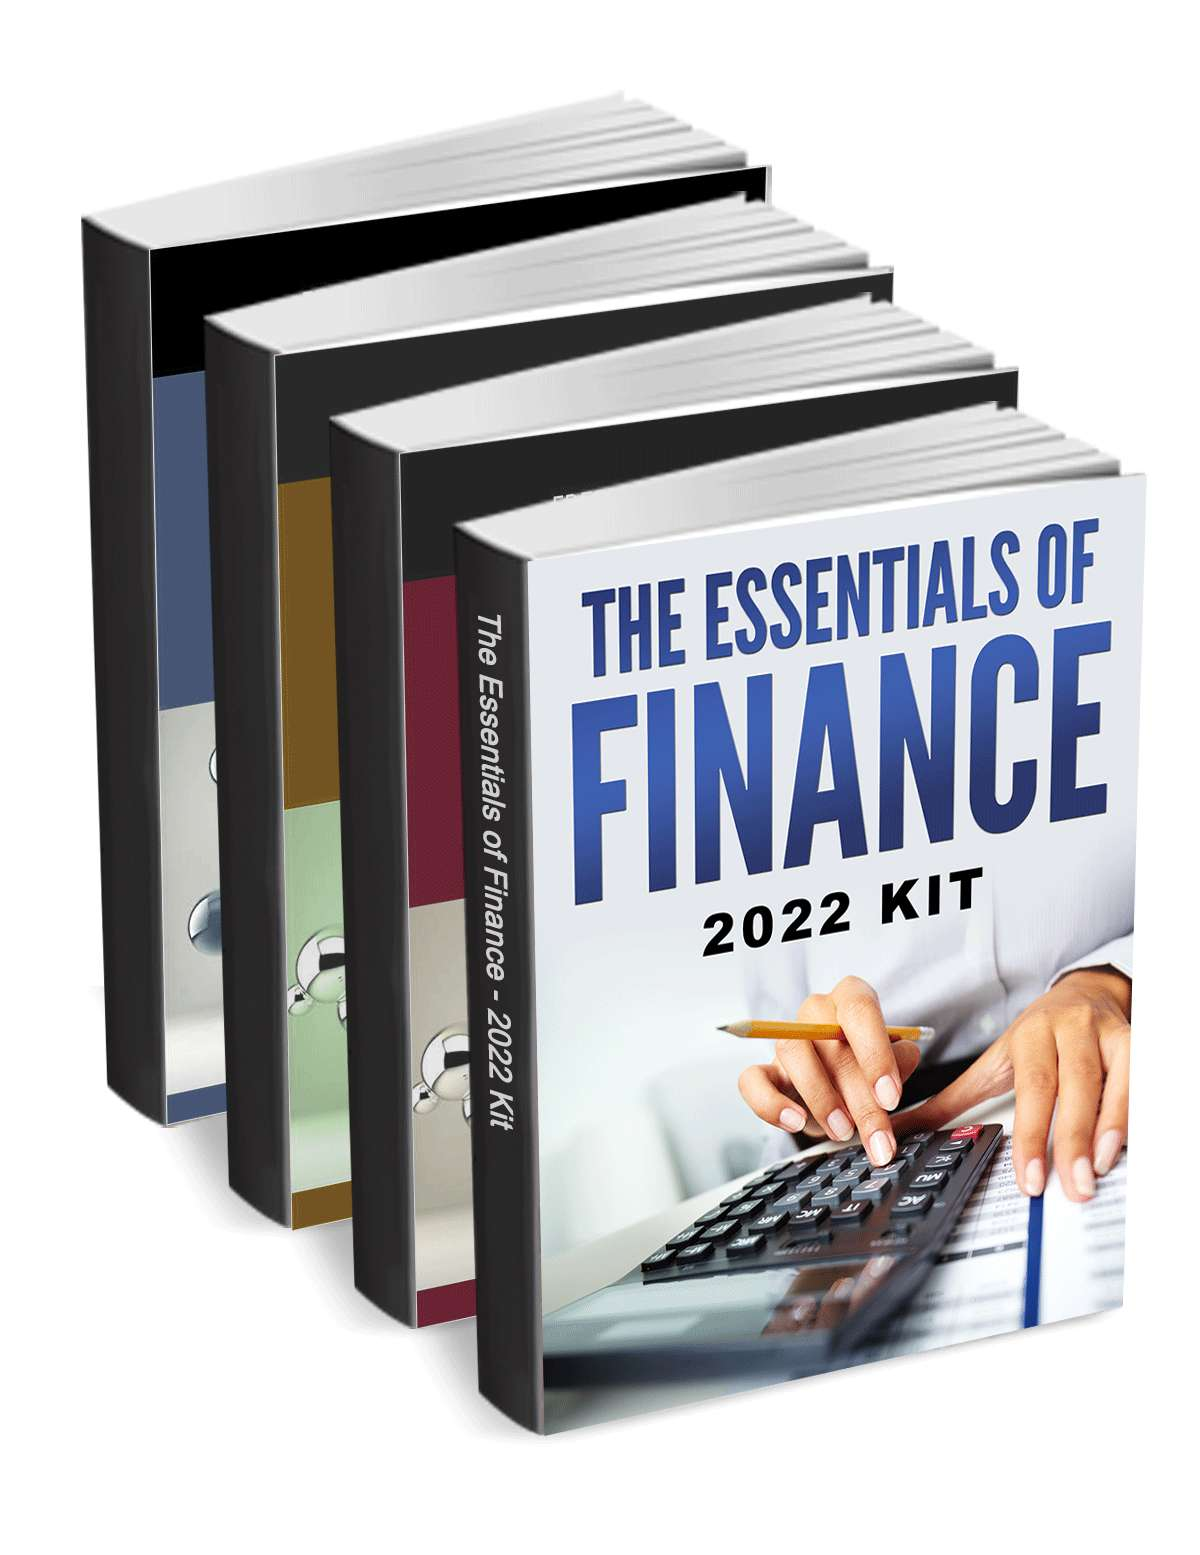 The Essentials of Finance - Fall 2016 Kit